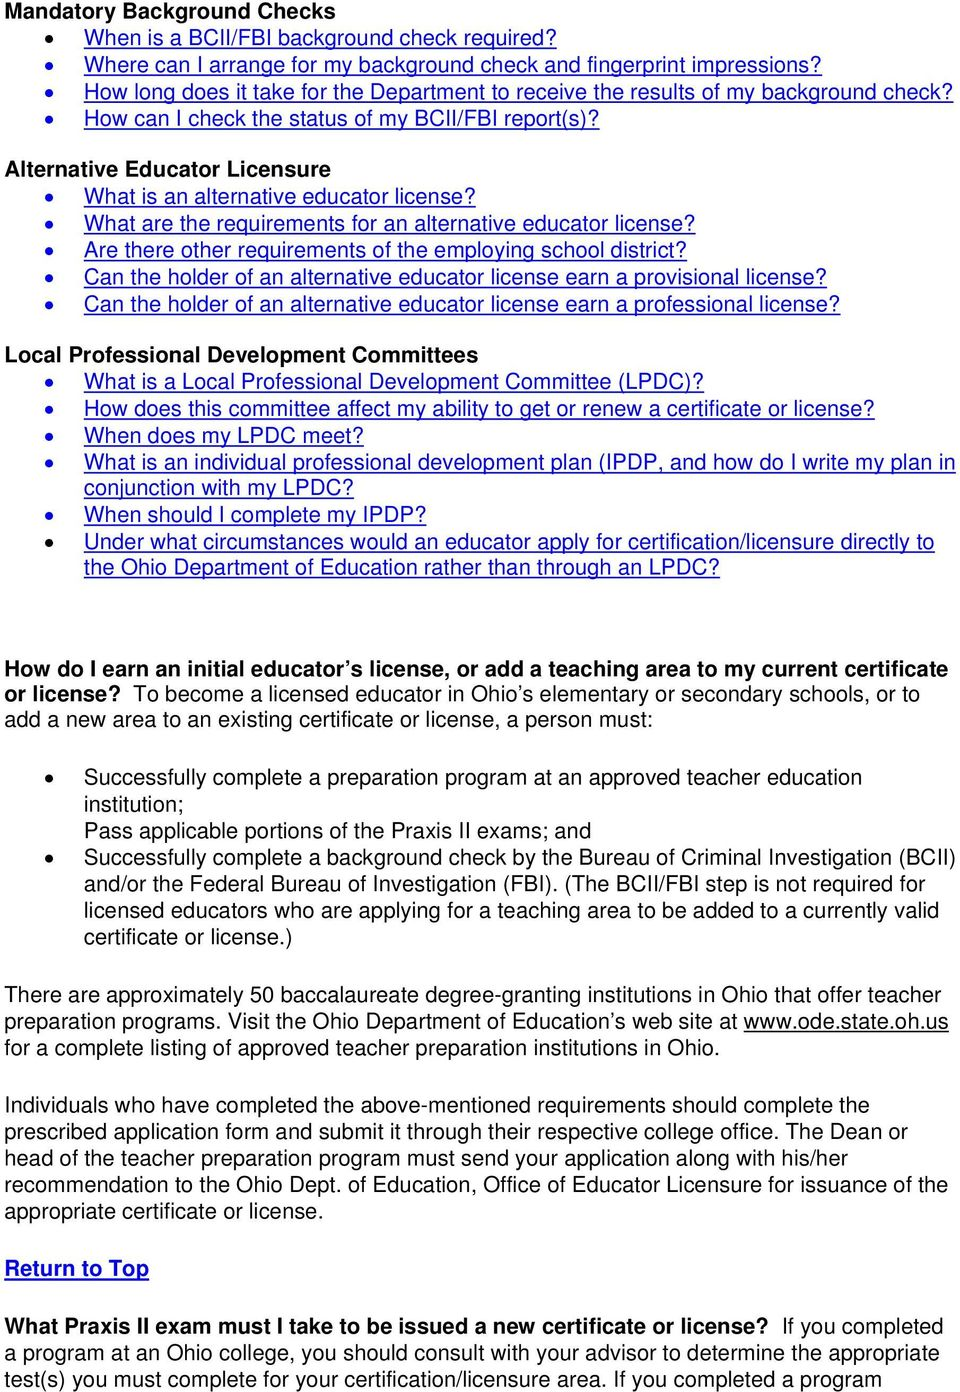 Frequently Asked Questions About Educator Licensure In Ohio Pdf